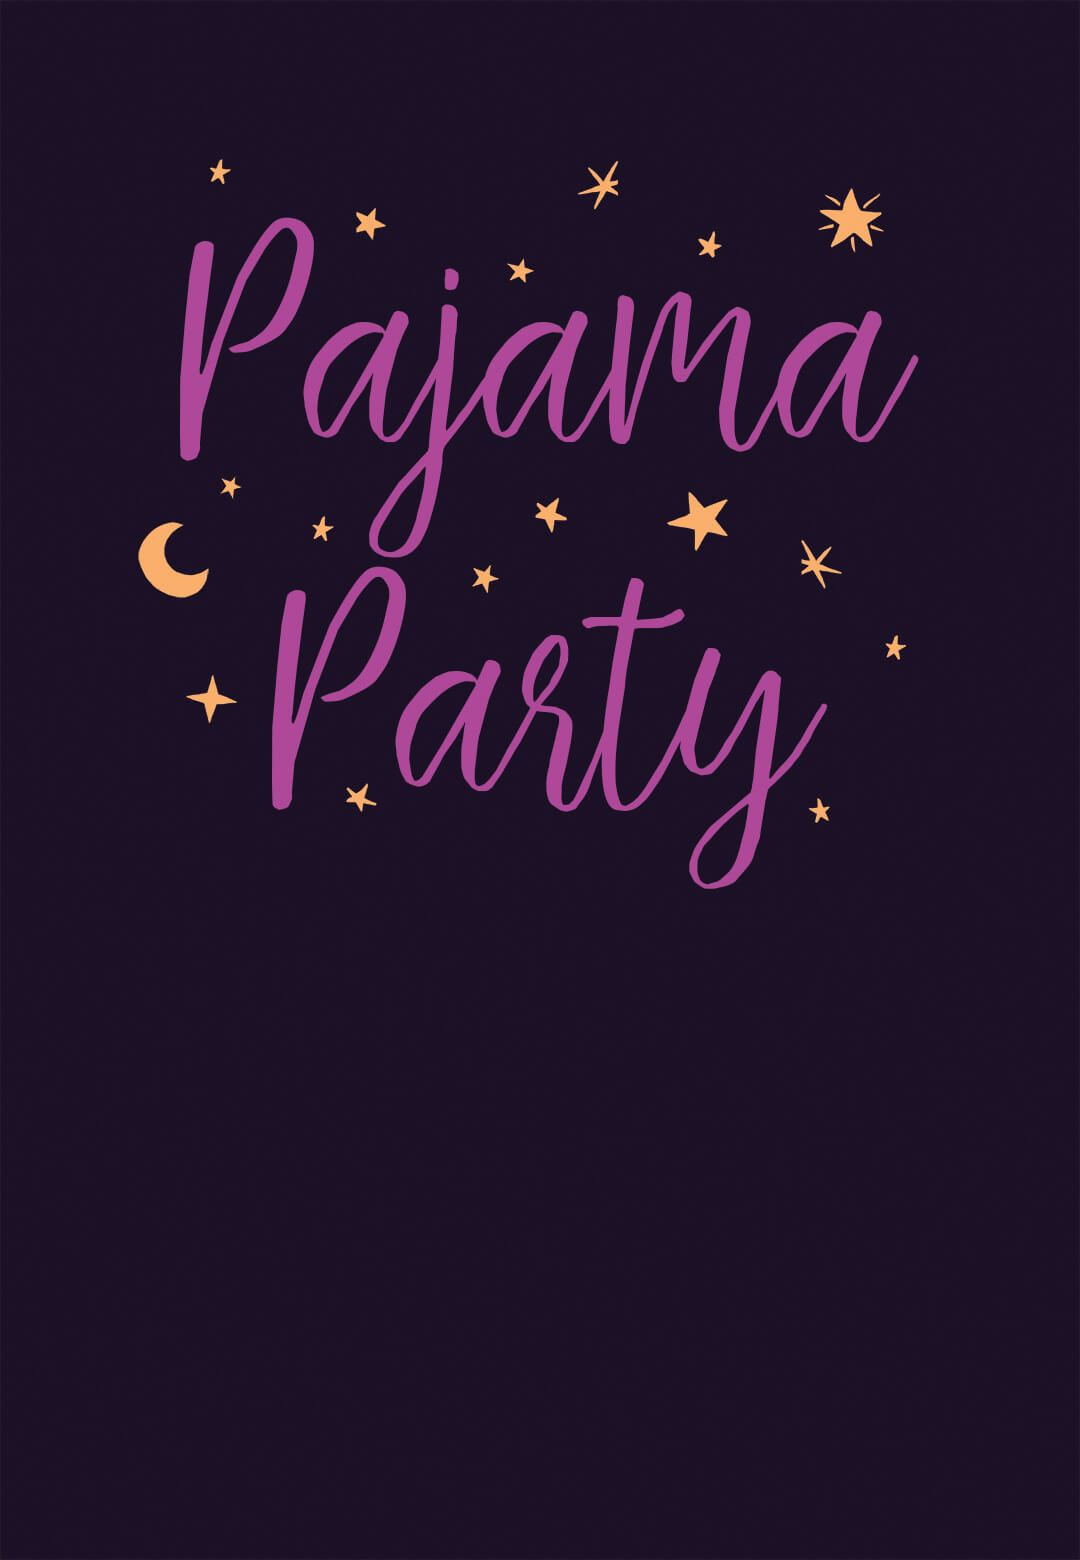 Pajama Party Free Sleepover Party Invitation Template Greetings intended for measurements 1080 X 1560